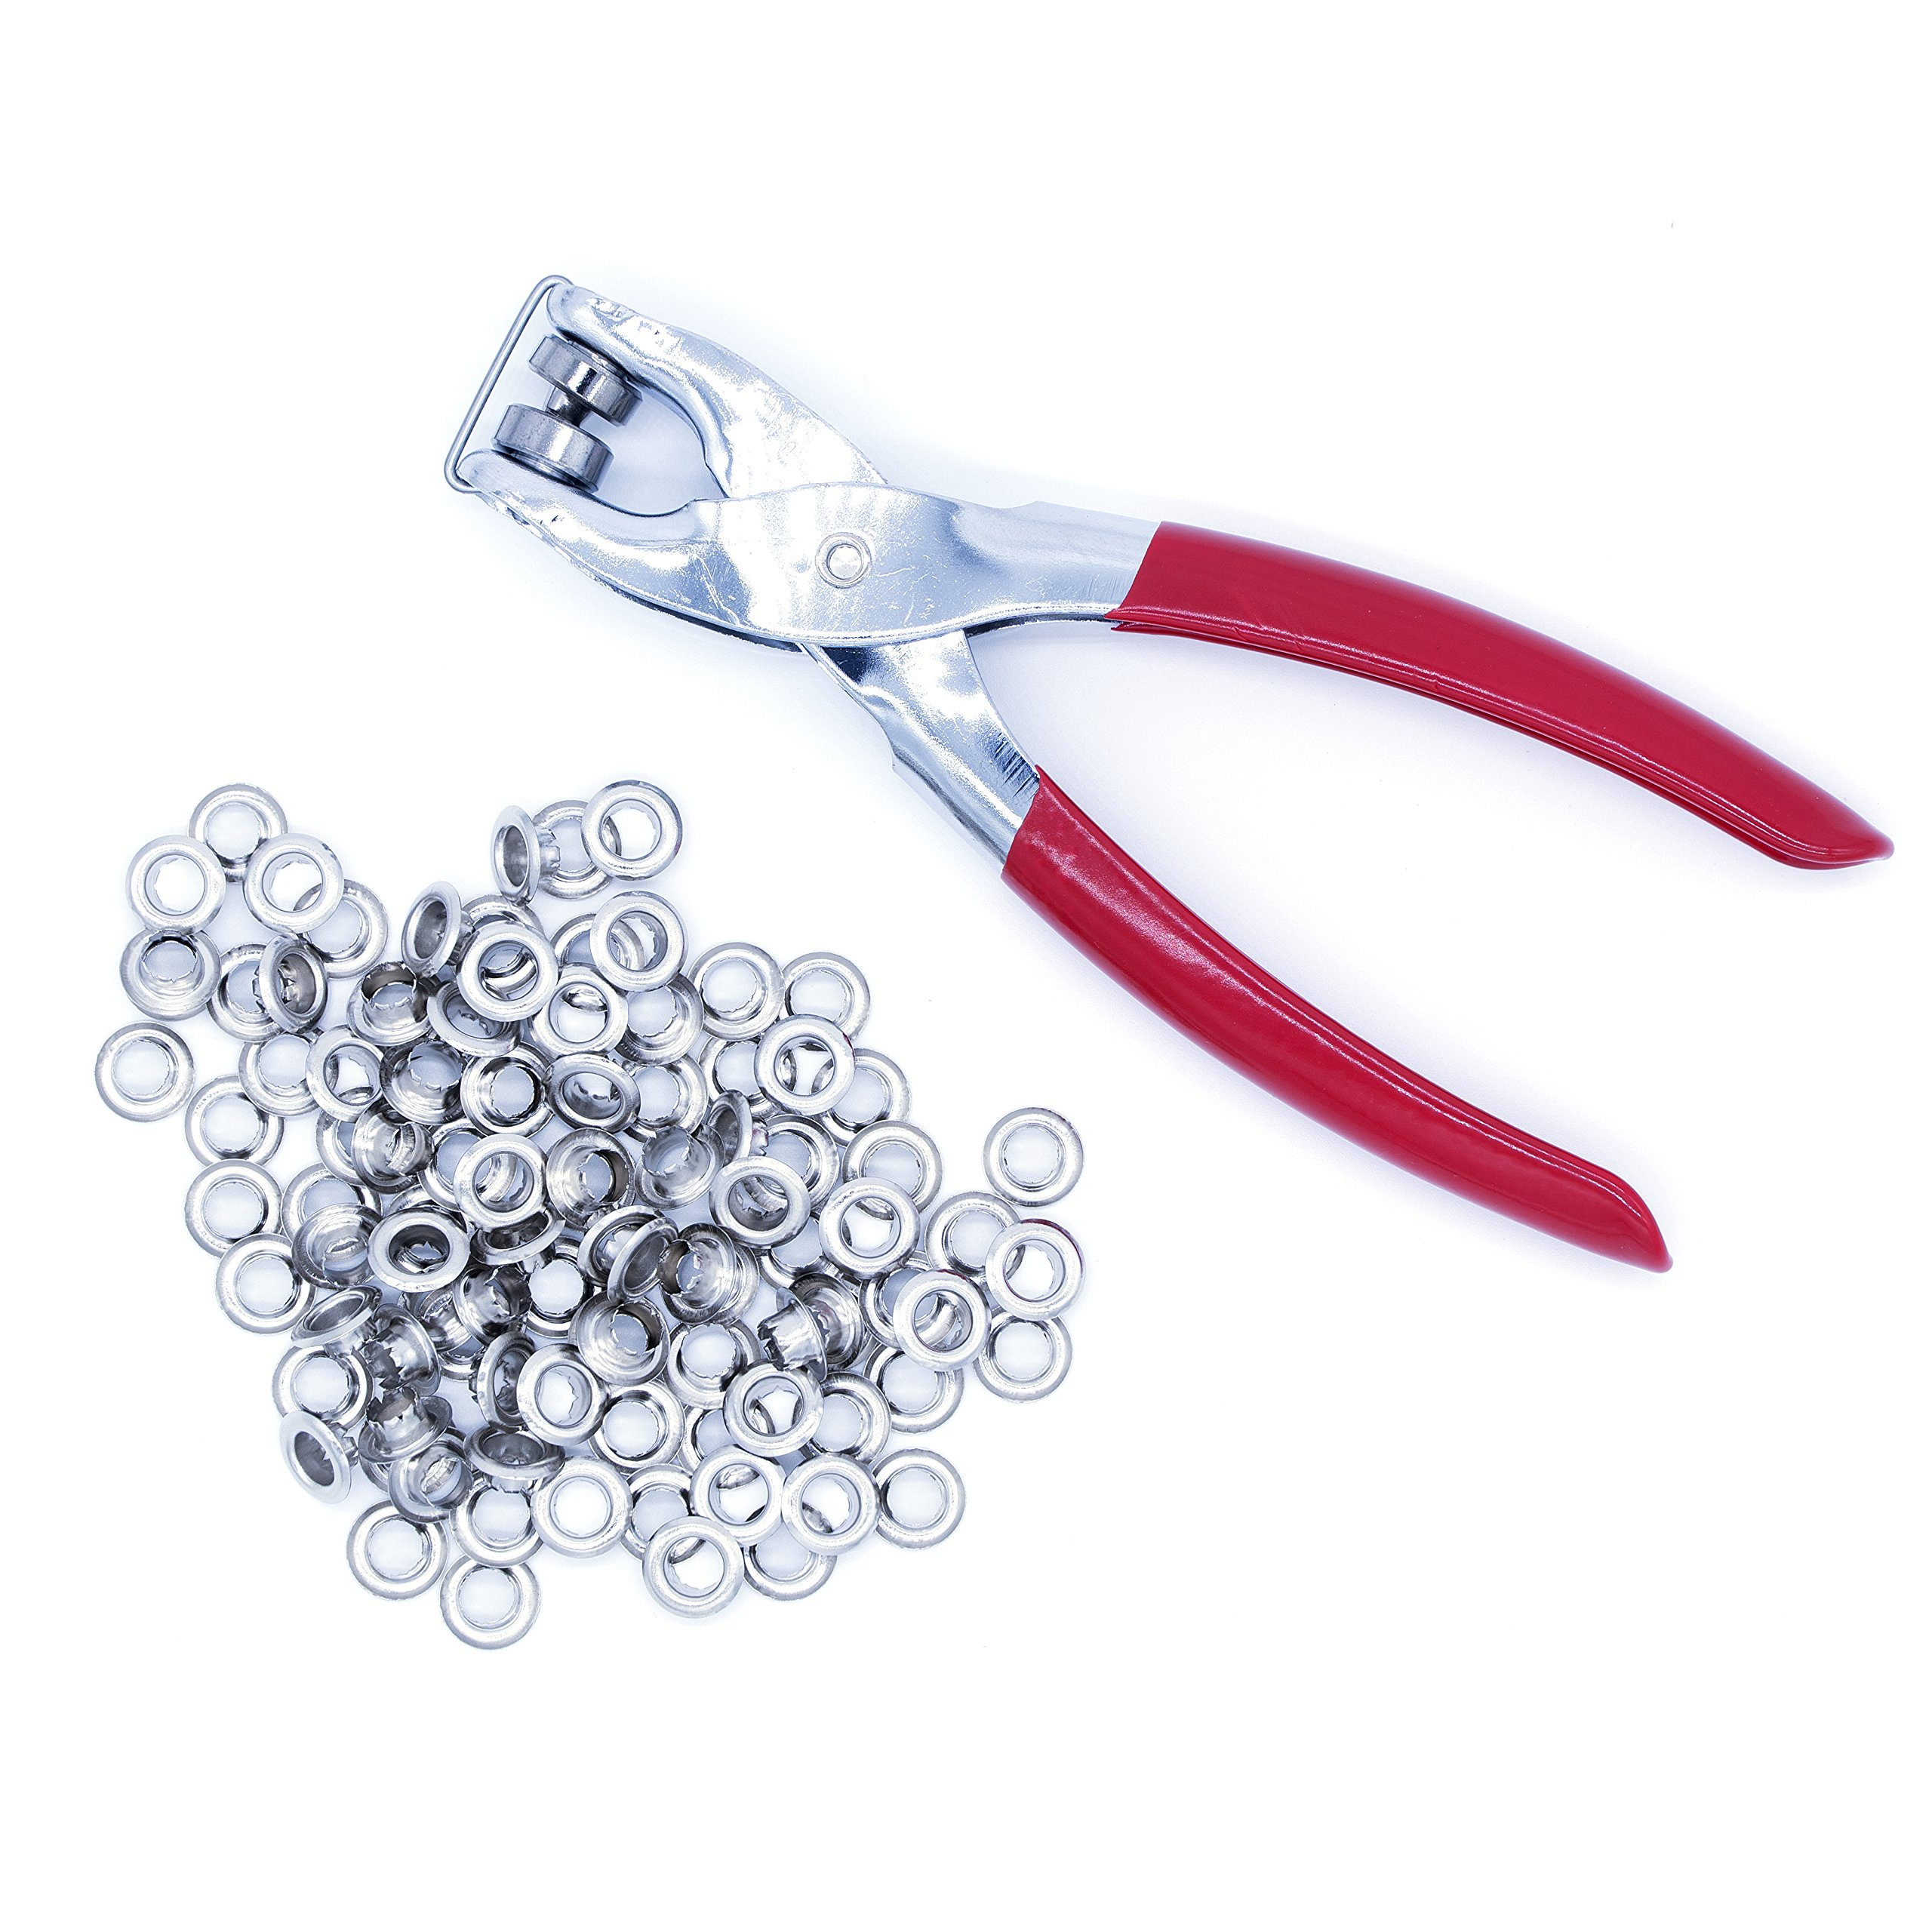 """Ram-Pro 1/4"""" Grommet Eyelet Setter Plier, Hole Punch Tool Kit with 100 Silver Metal Eyelets Grommets"""